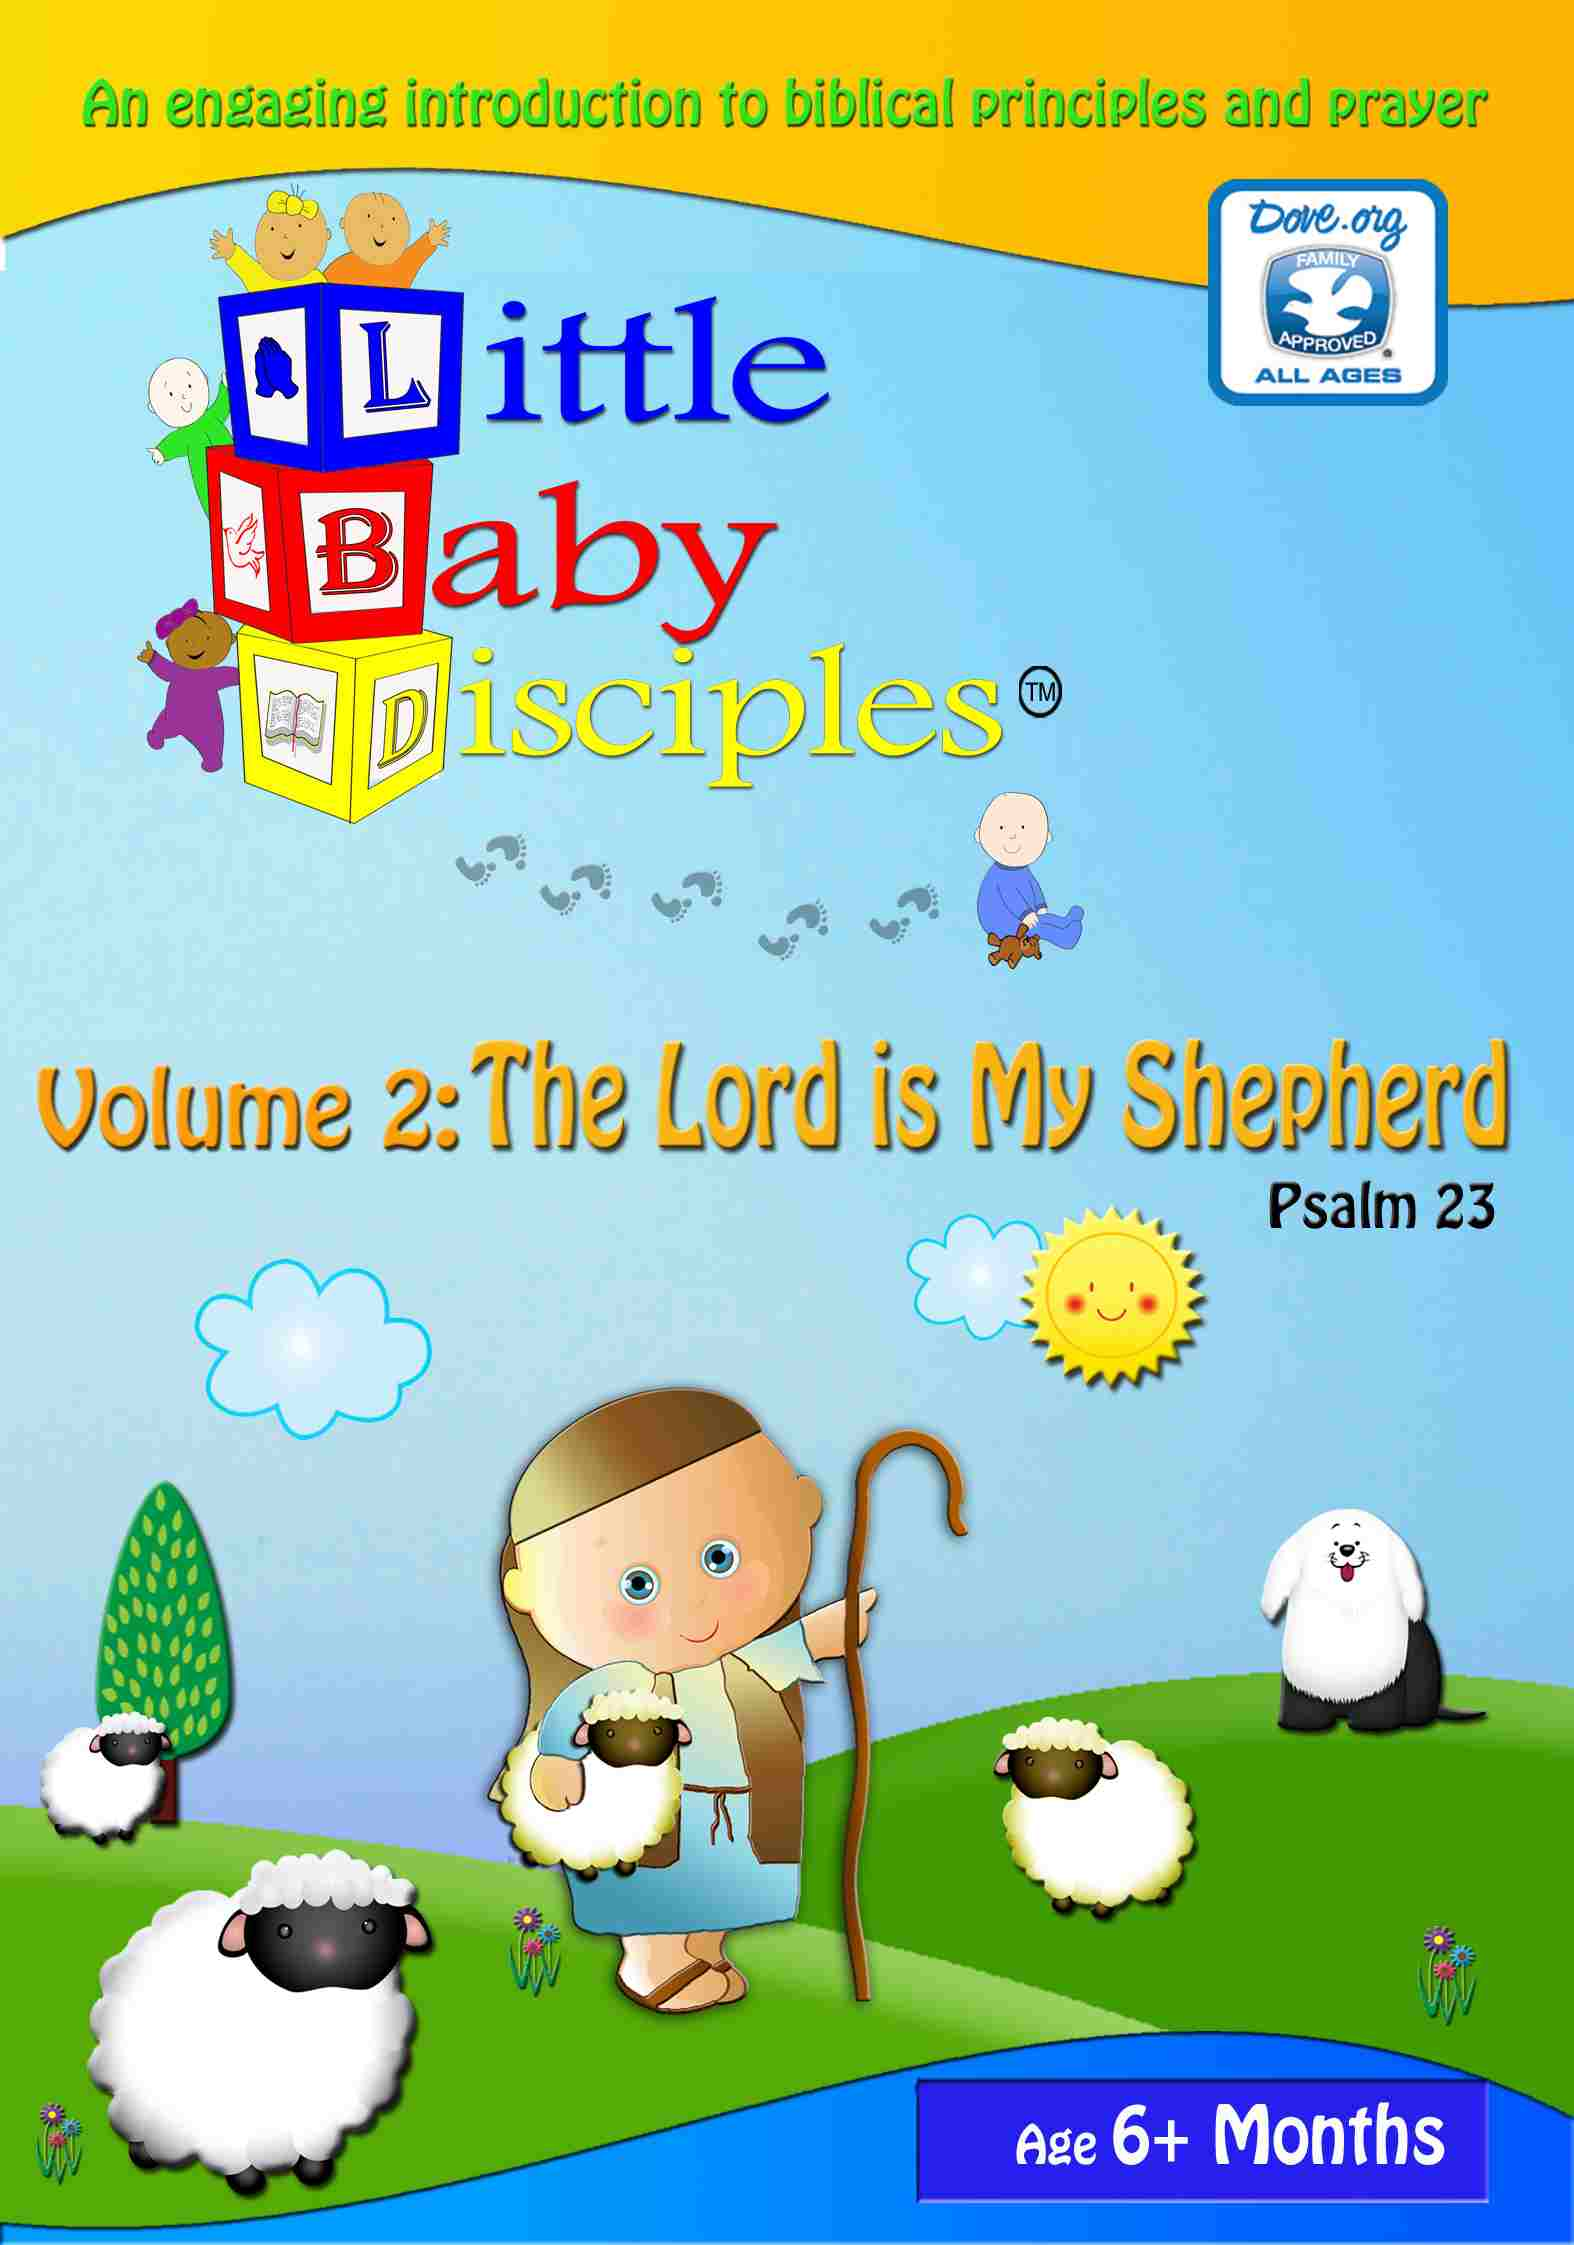 Little Baby Disciples, Vol. 2: Psalm 23 - The Lord Is My Shepherd